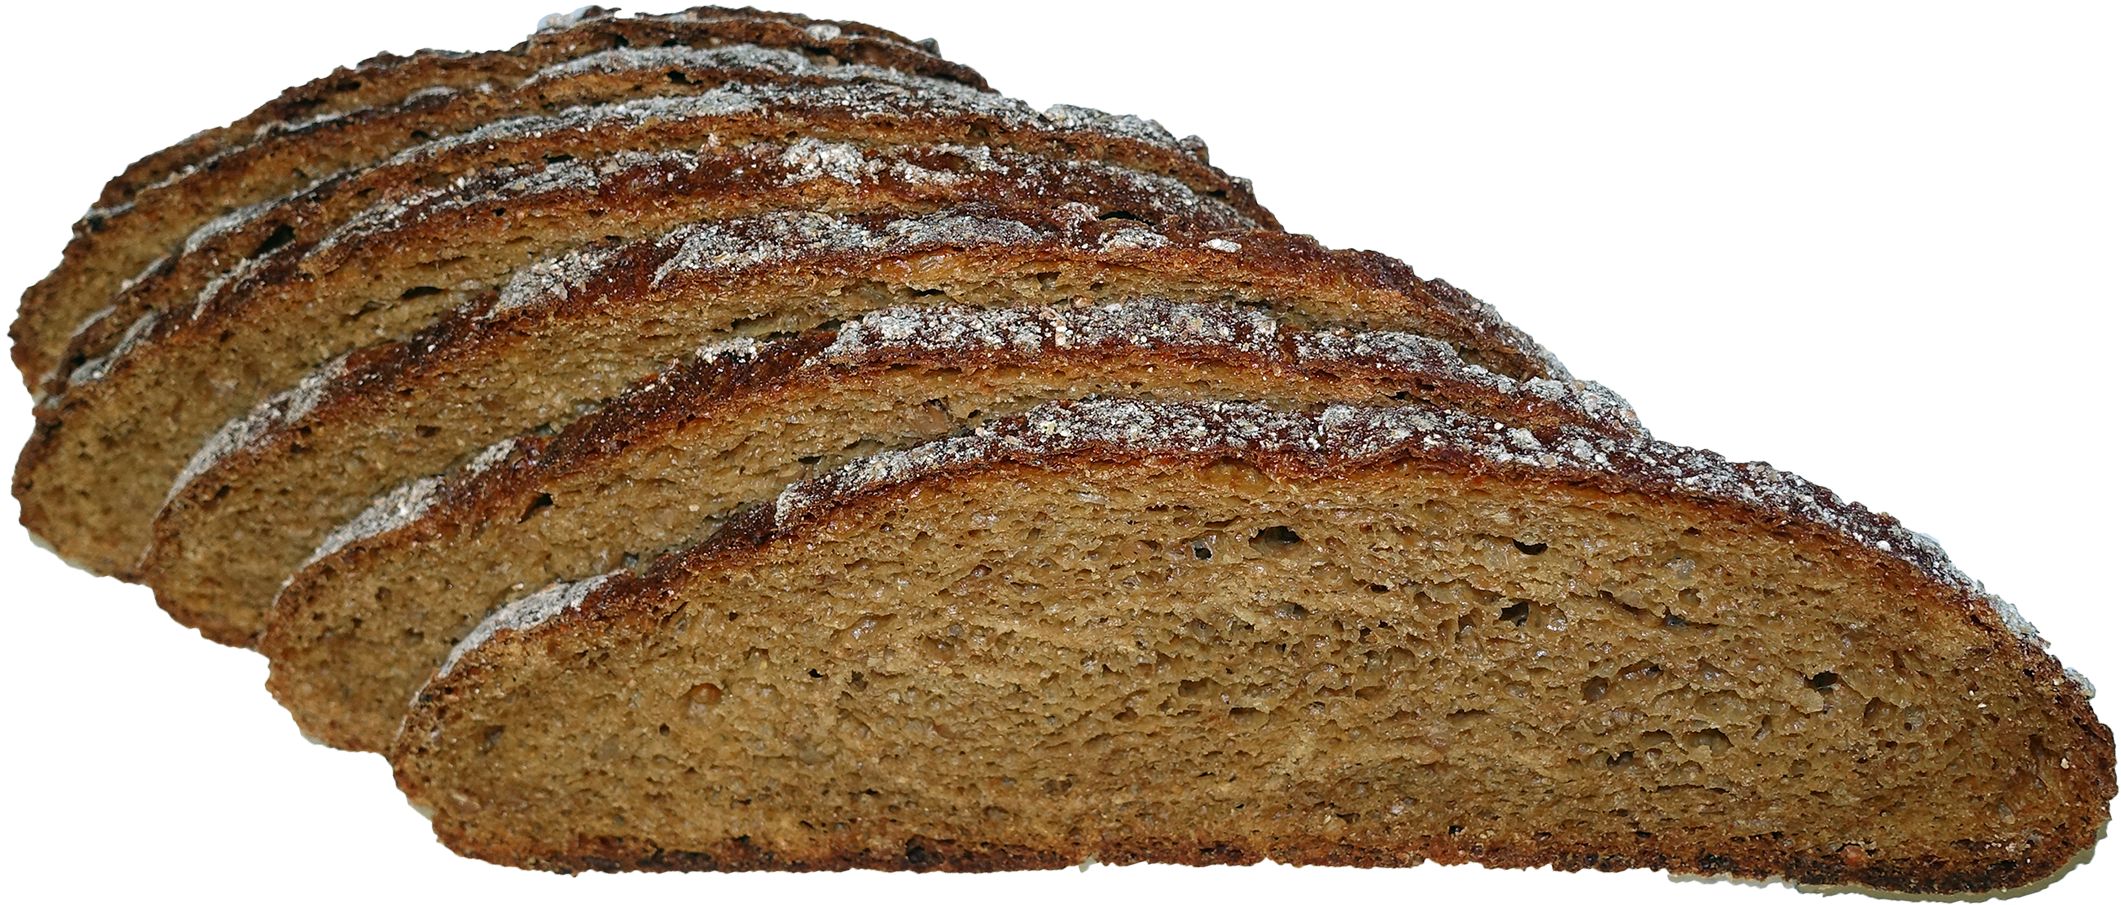 File Rye Bread Png Wikimedia Commons Use these free bread png #32 for your personal projects or designs. https commons wikimedia org wiki file rye bread png